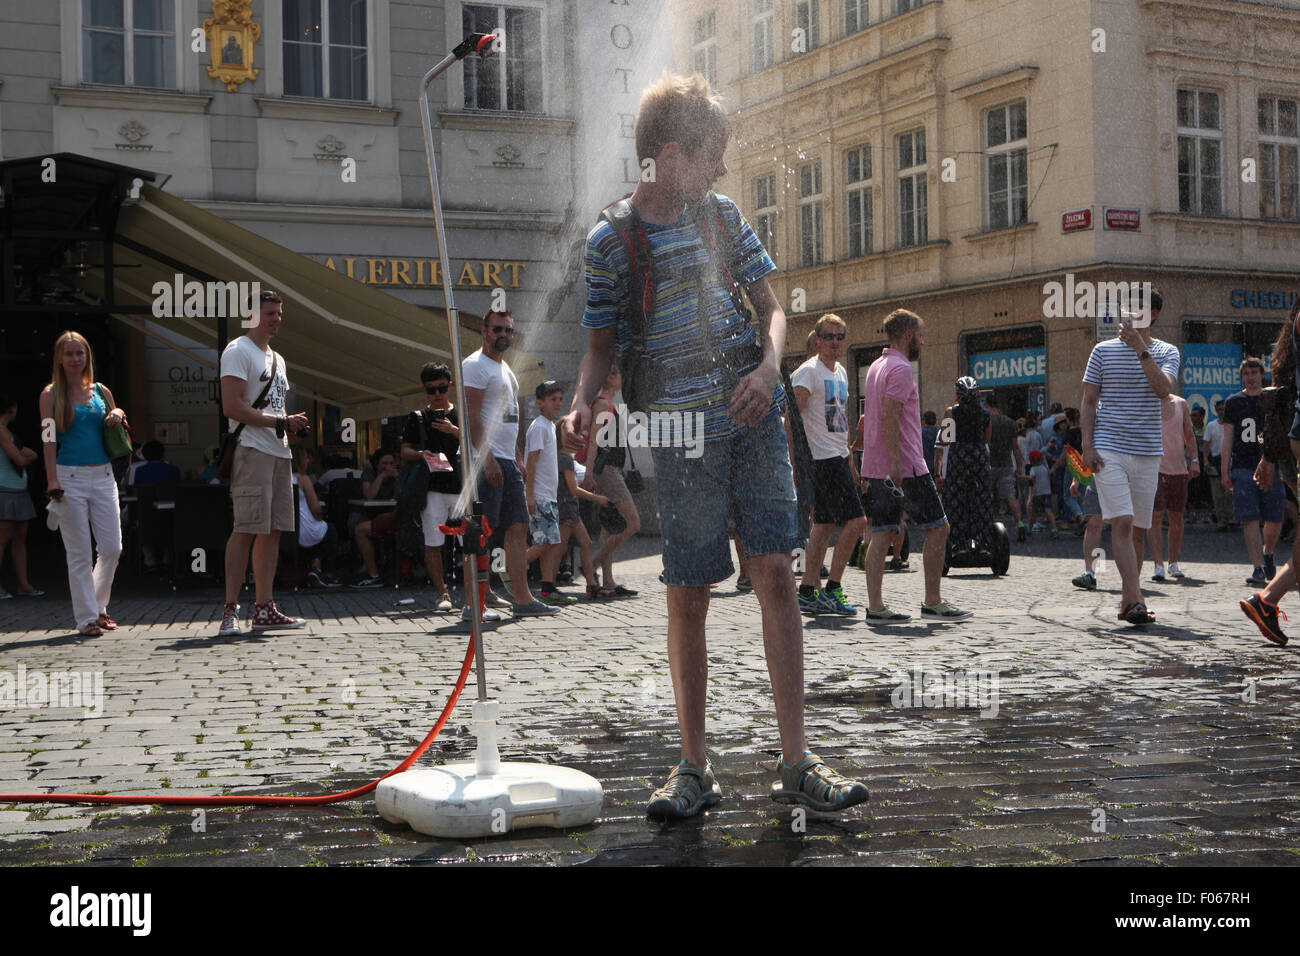 Prague, Czech Republic. 7th August 2015. A boy tries to cool off from a water sprinkler installed in Old Town Square - Stock Image